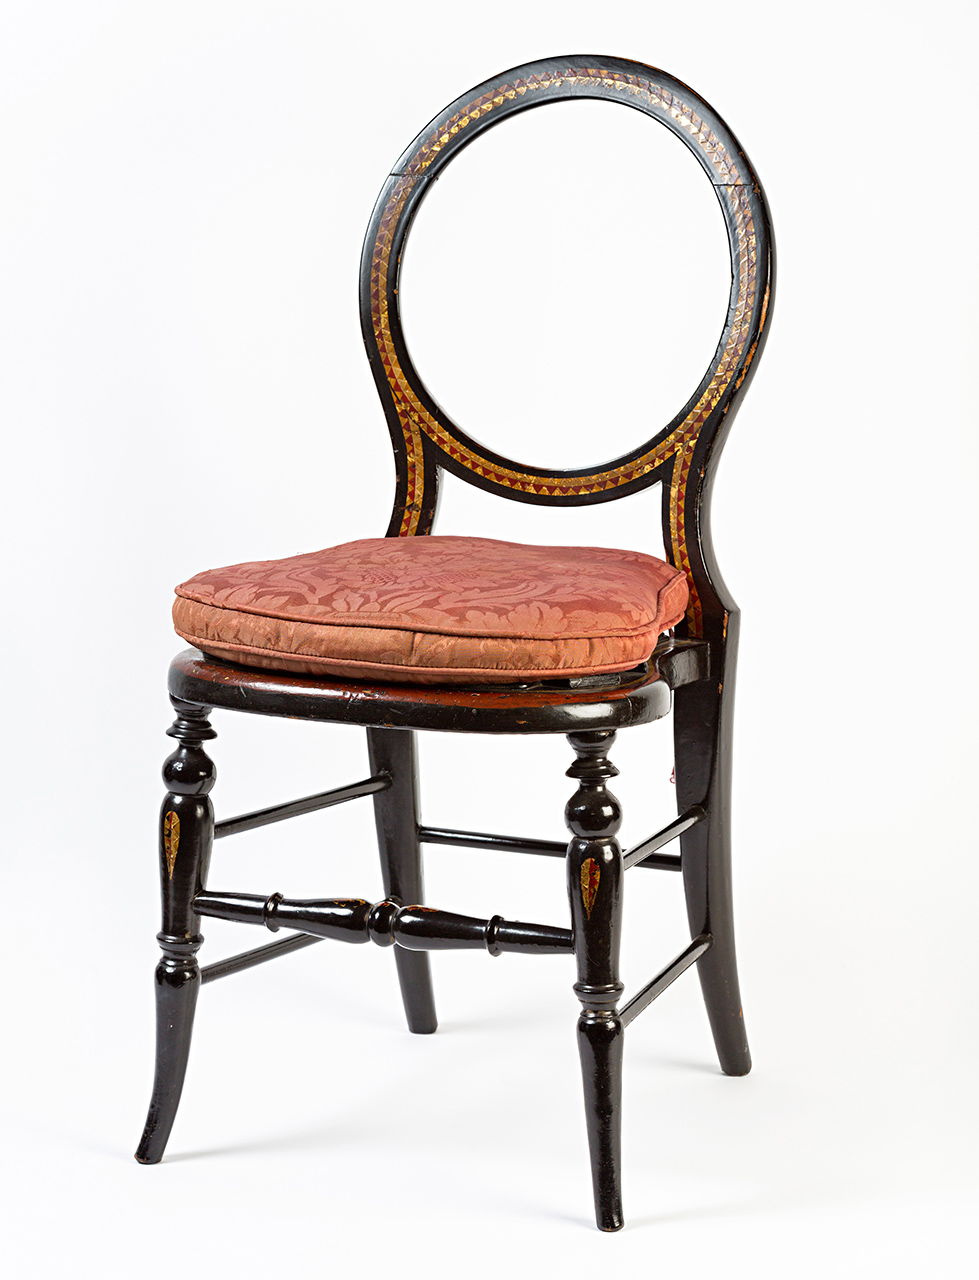 A pair of Victorian black and gilt papier-mâché child's side chairs, circa 1850.